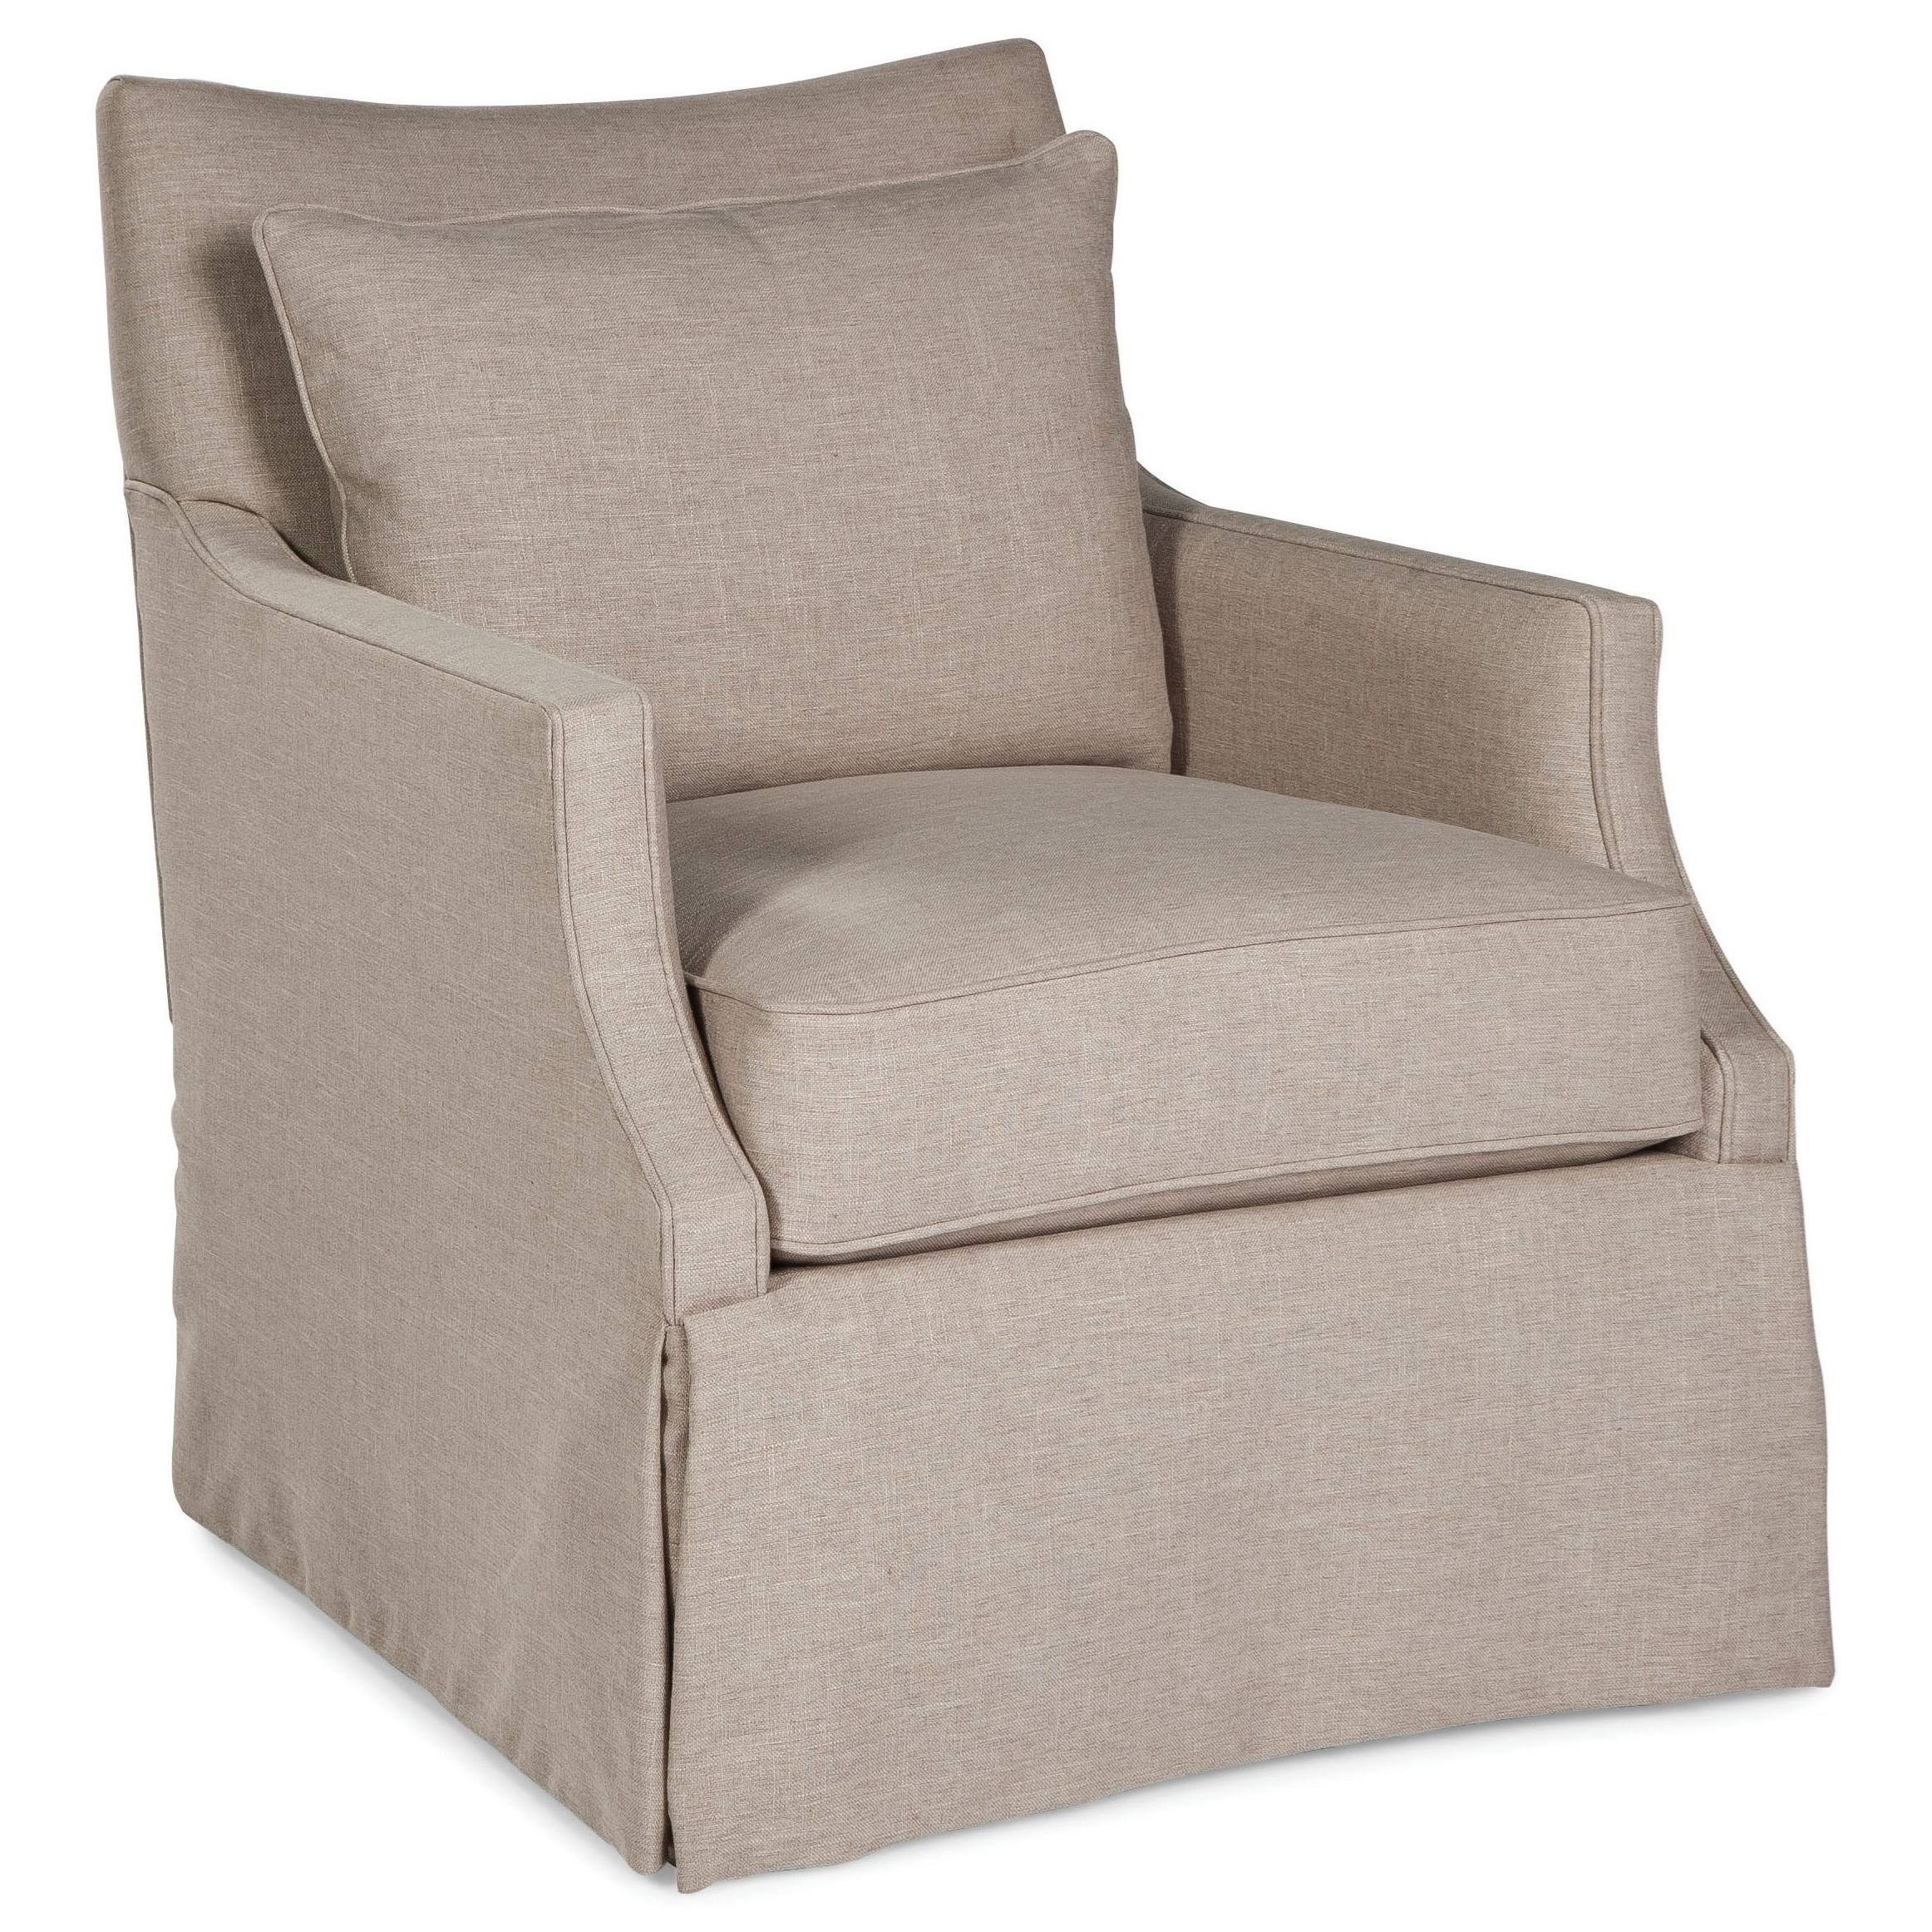 Fairfield Swivel Accent Chairs 1429 31 Swivel Chair With